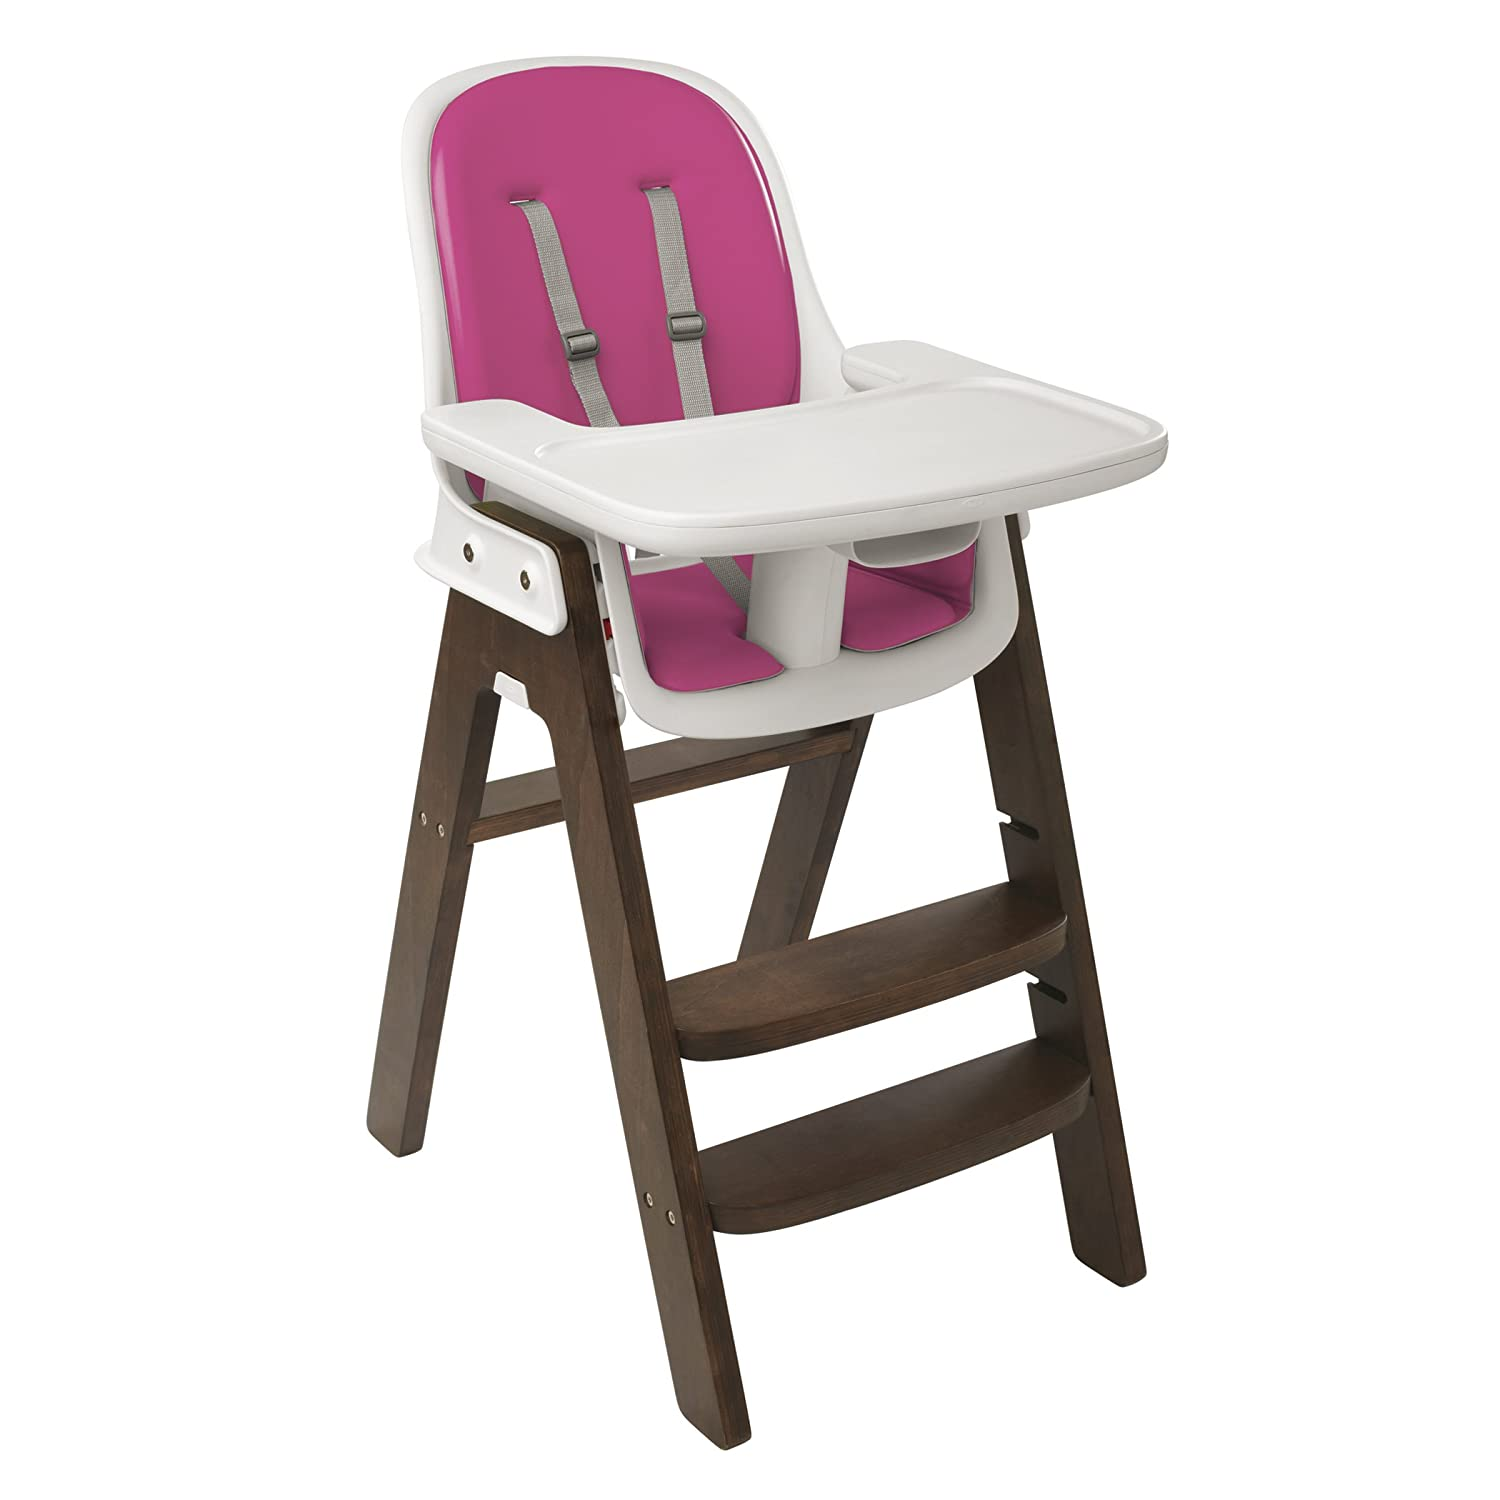 Amazon.com : OXO Tot Sprout High Chair, Pink/Walnut : Childrens Highchairs  : Baby